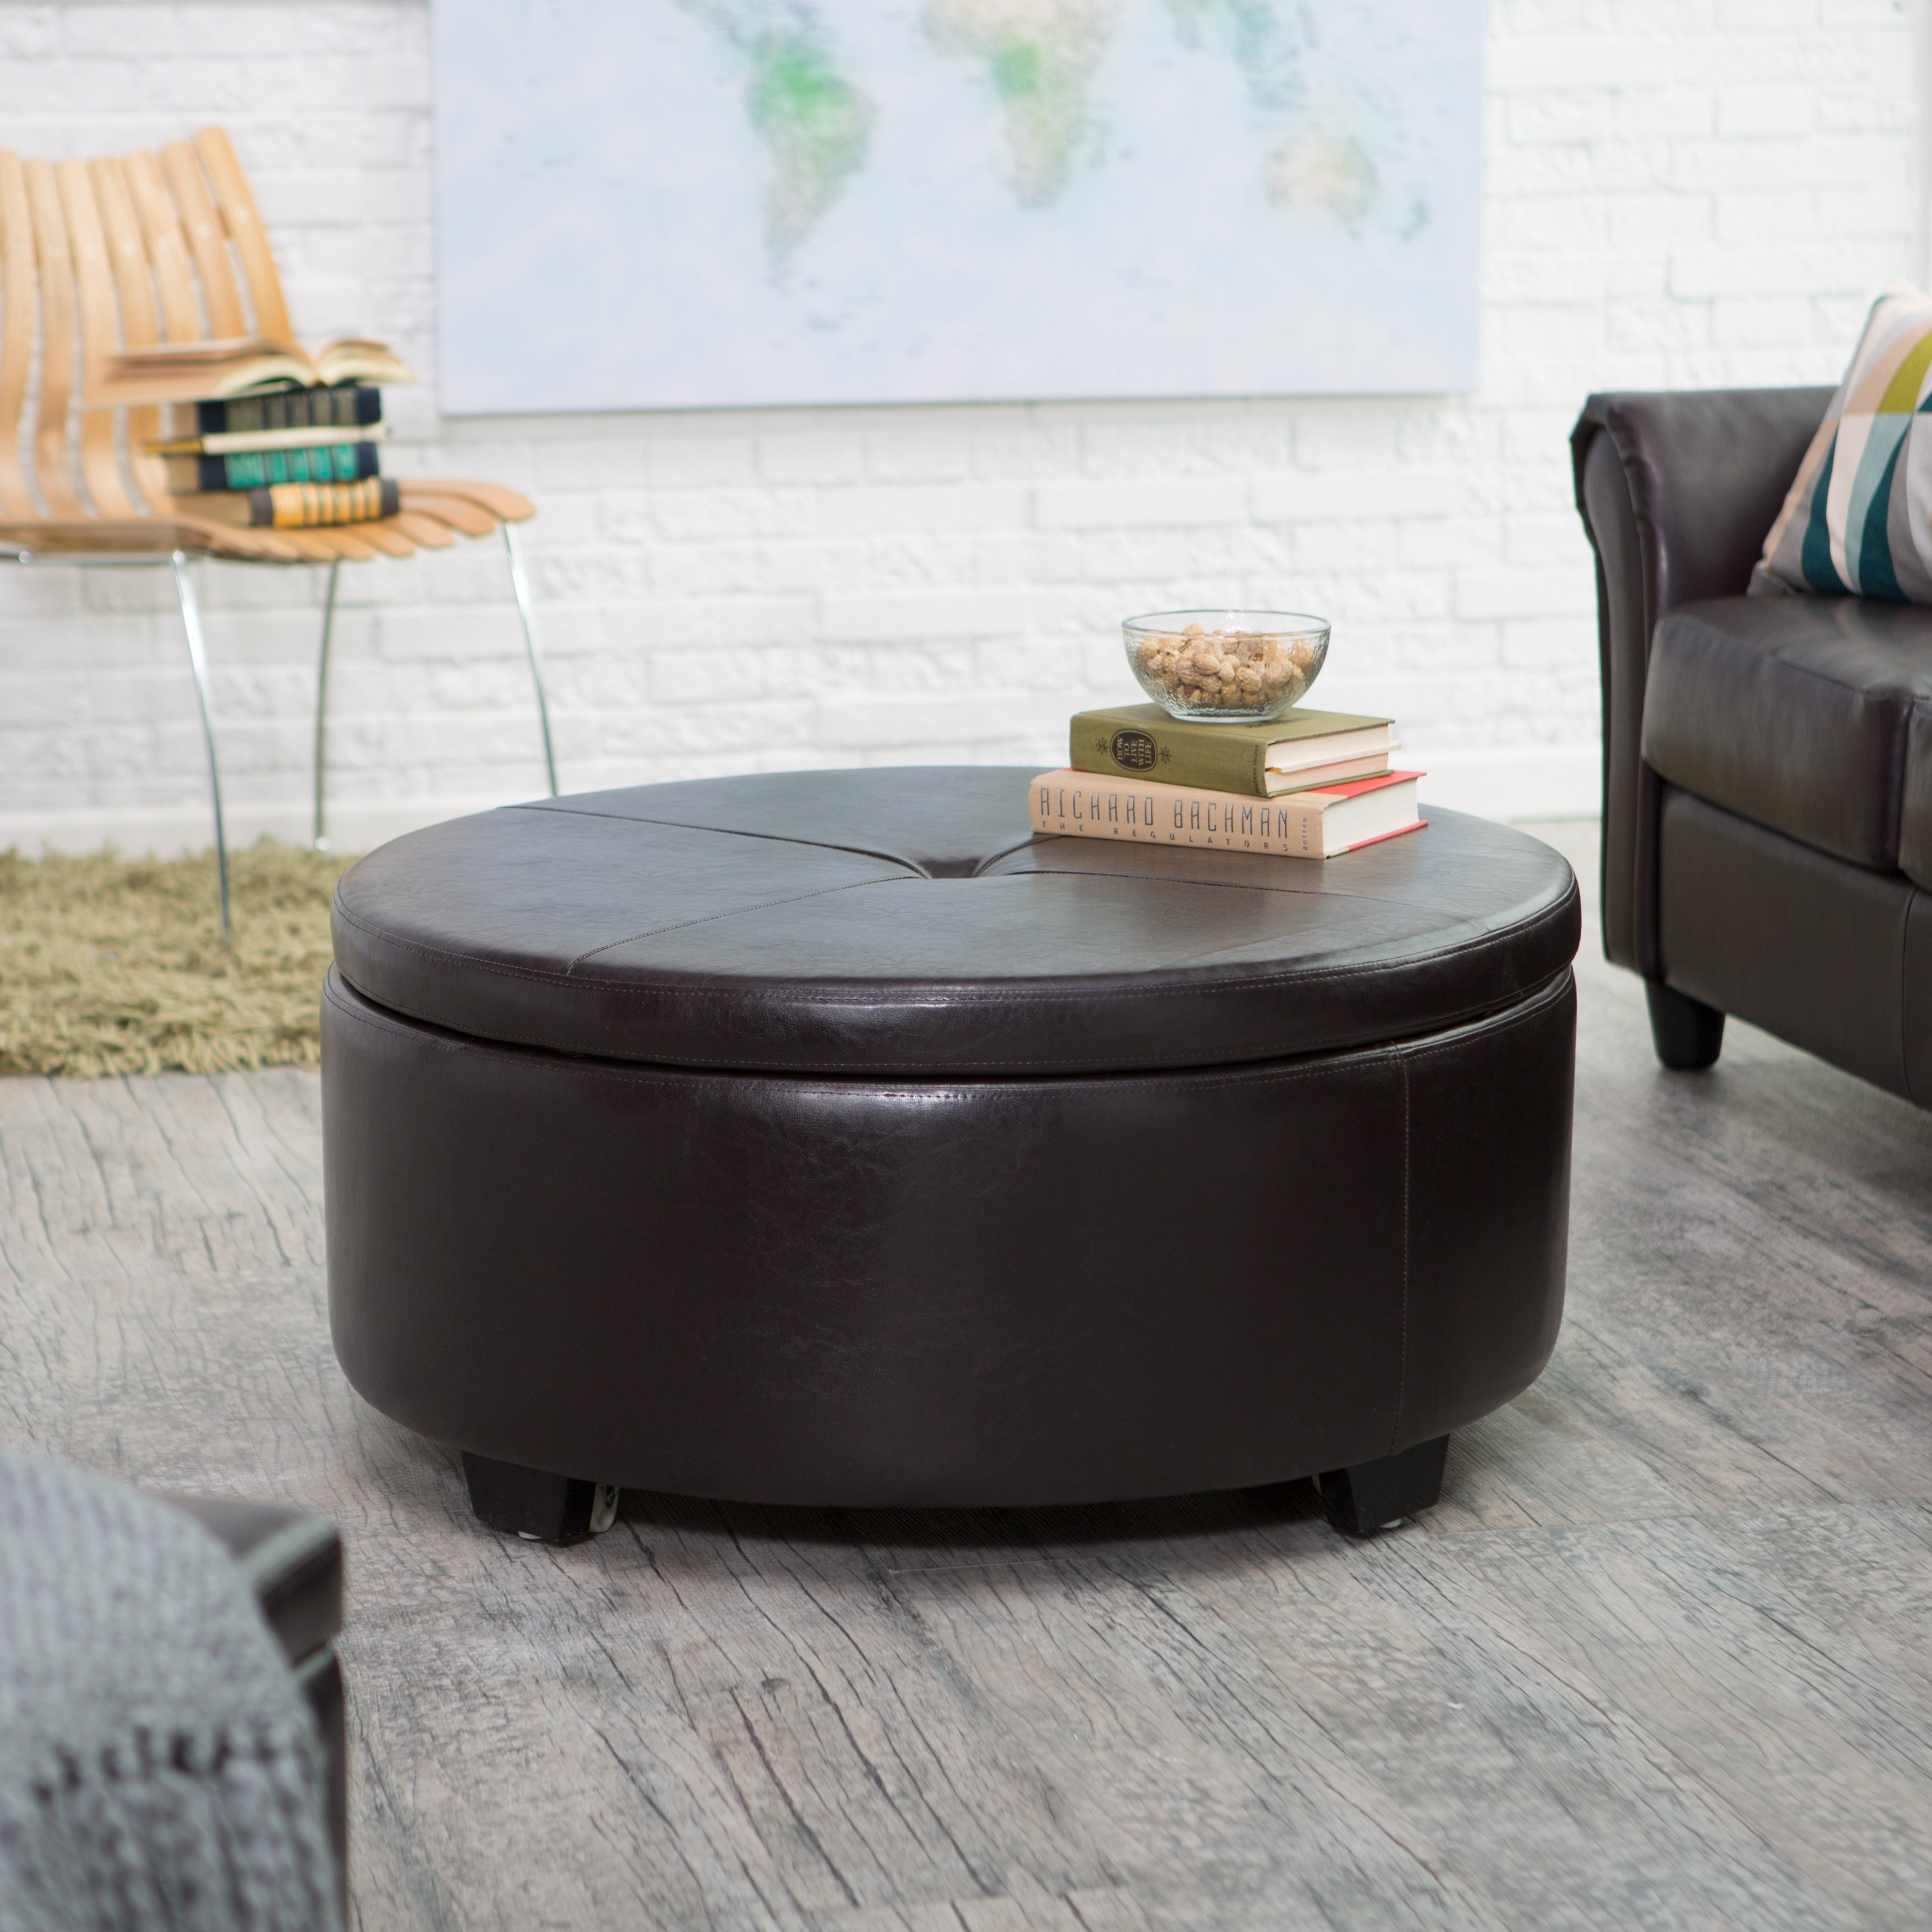 belham living corbett round coffee table storage ottoman - walmart